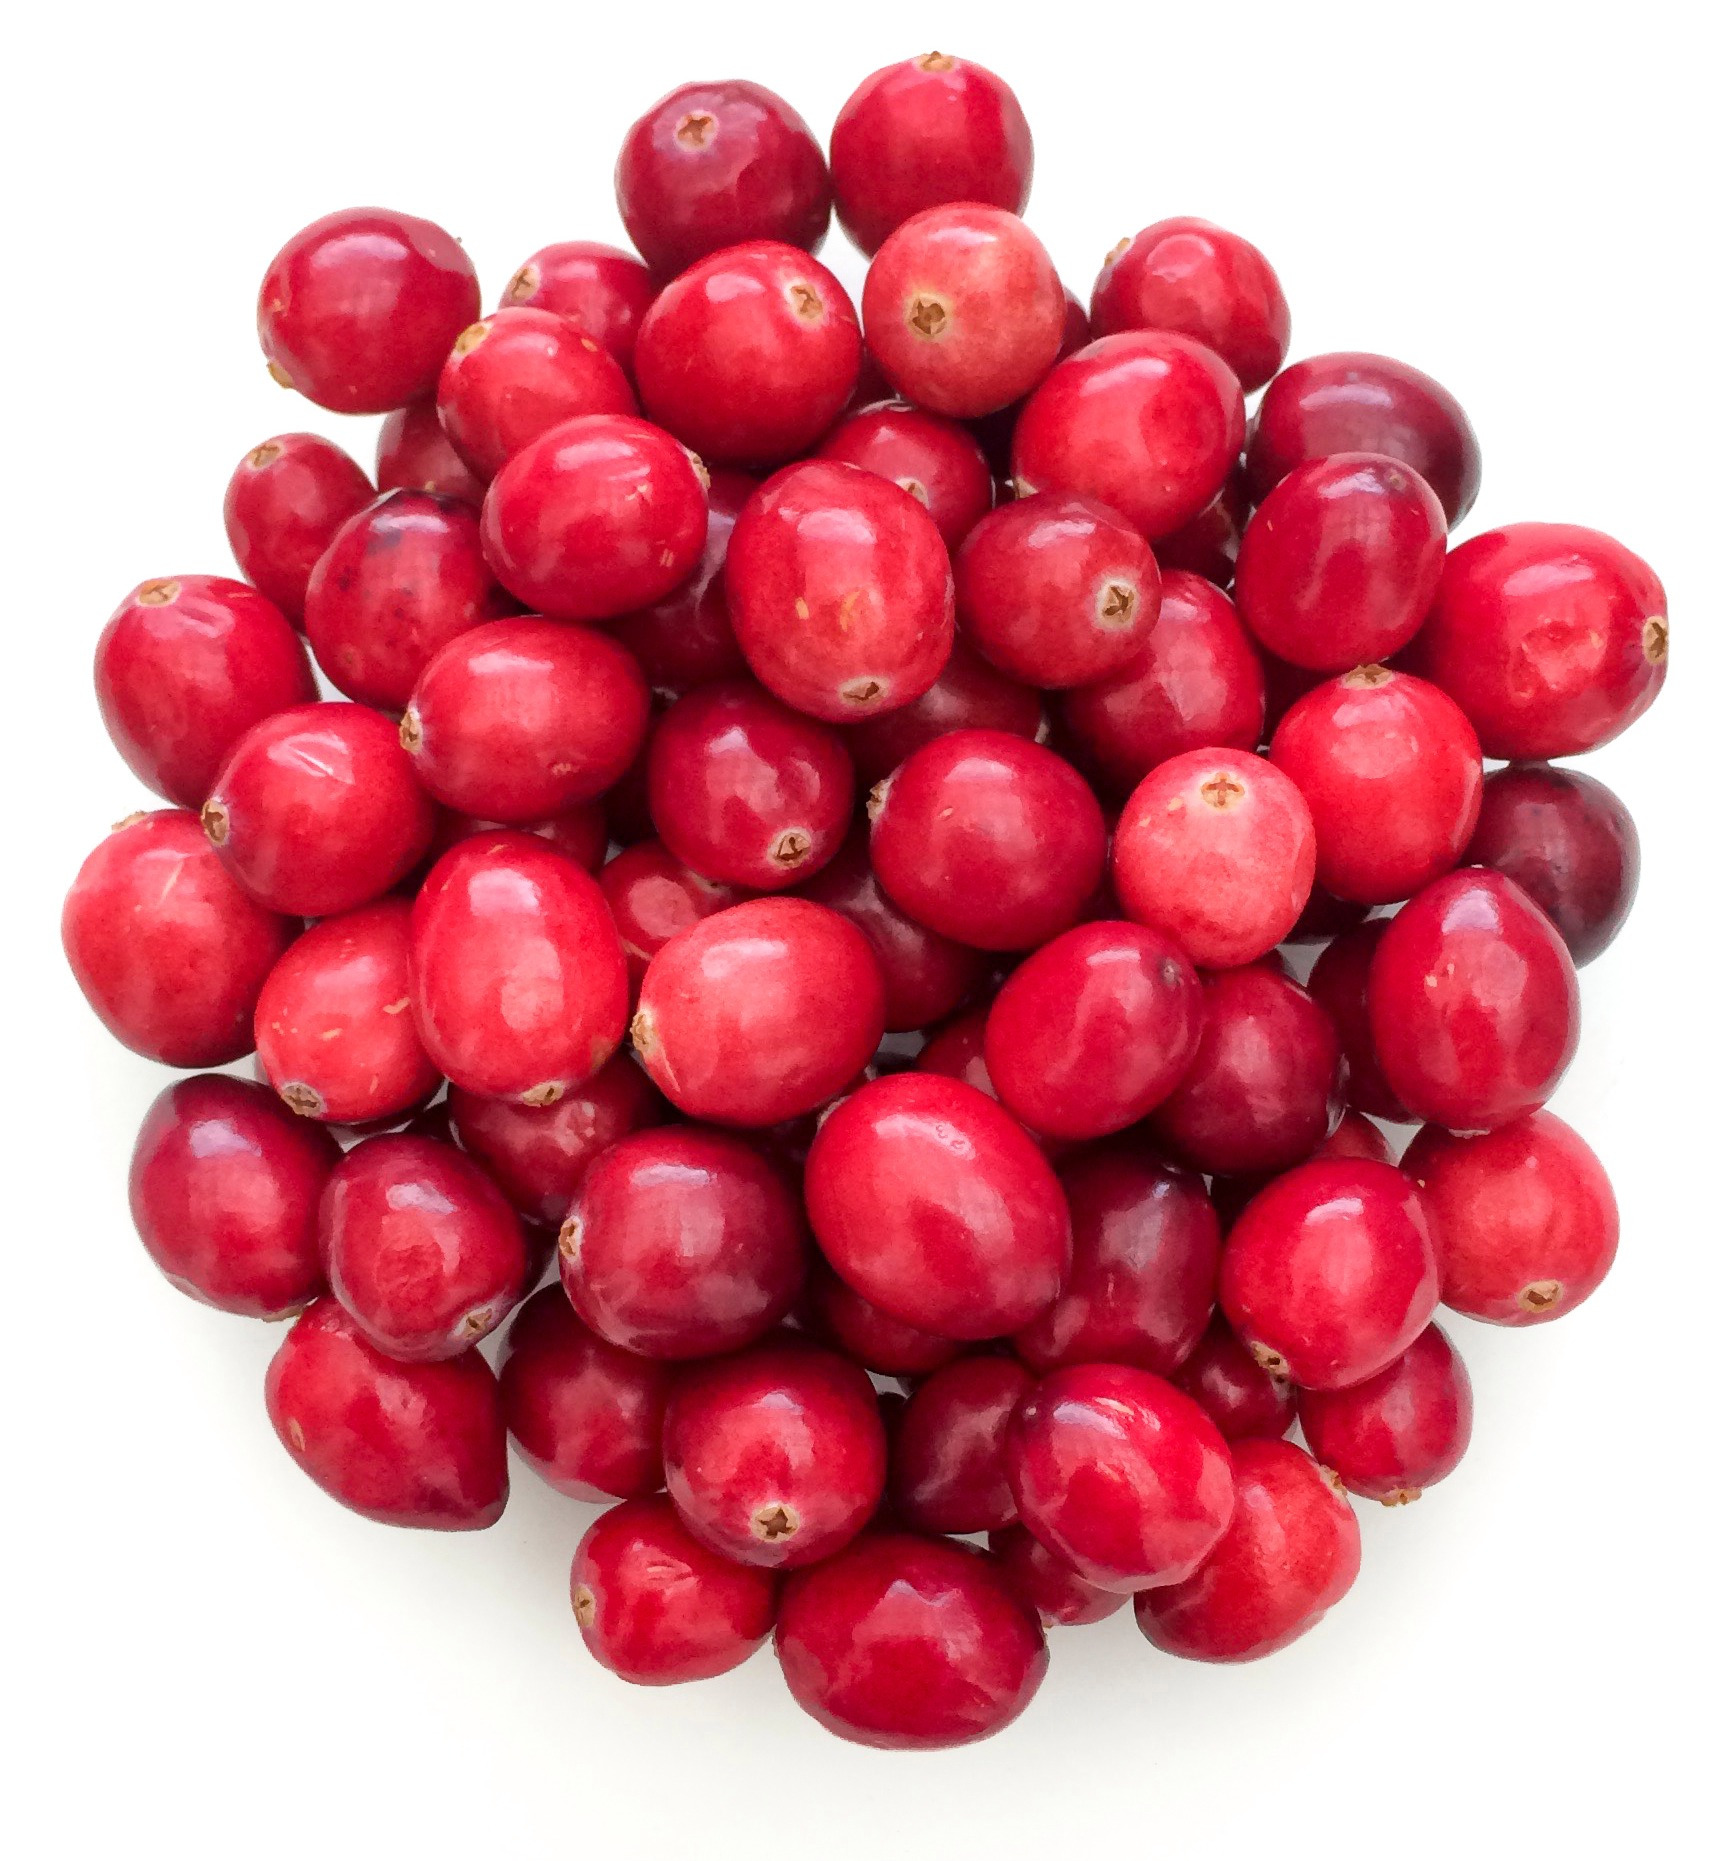 It's thought that drinking cranberry juice can help relieve the pain of a urine infection